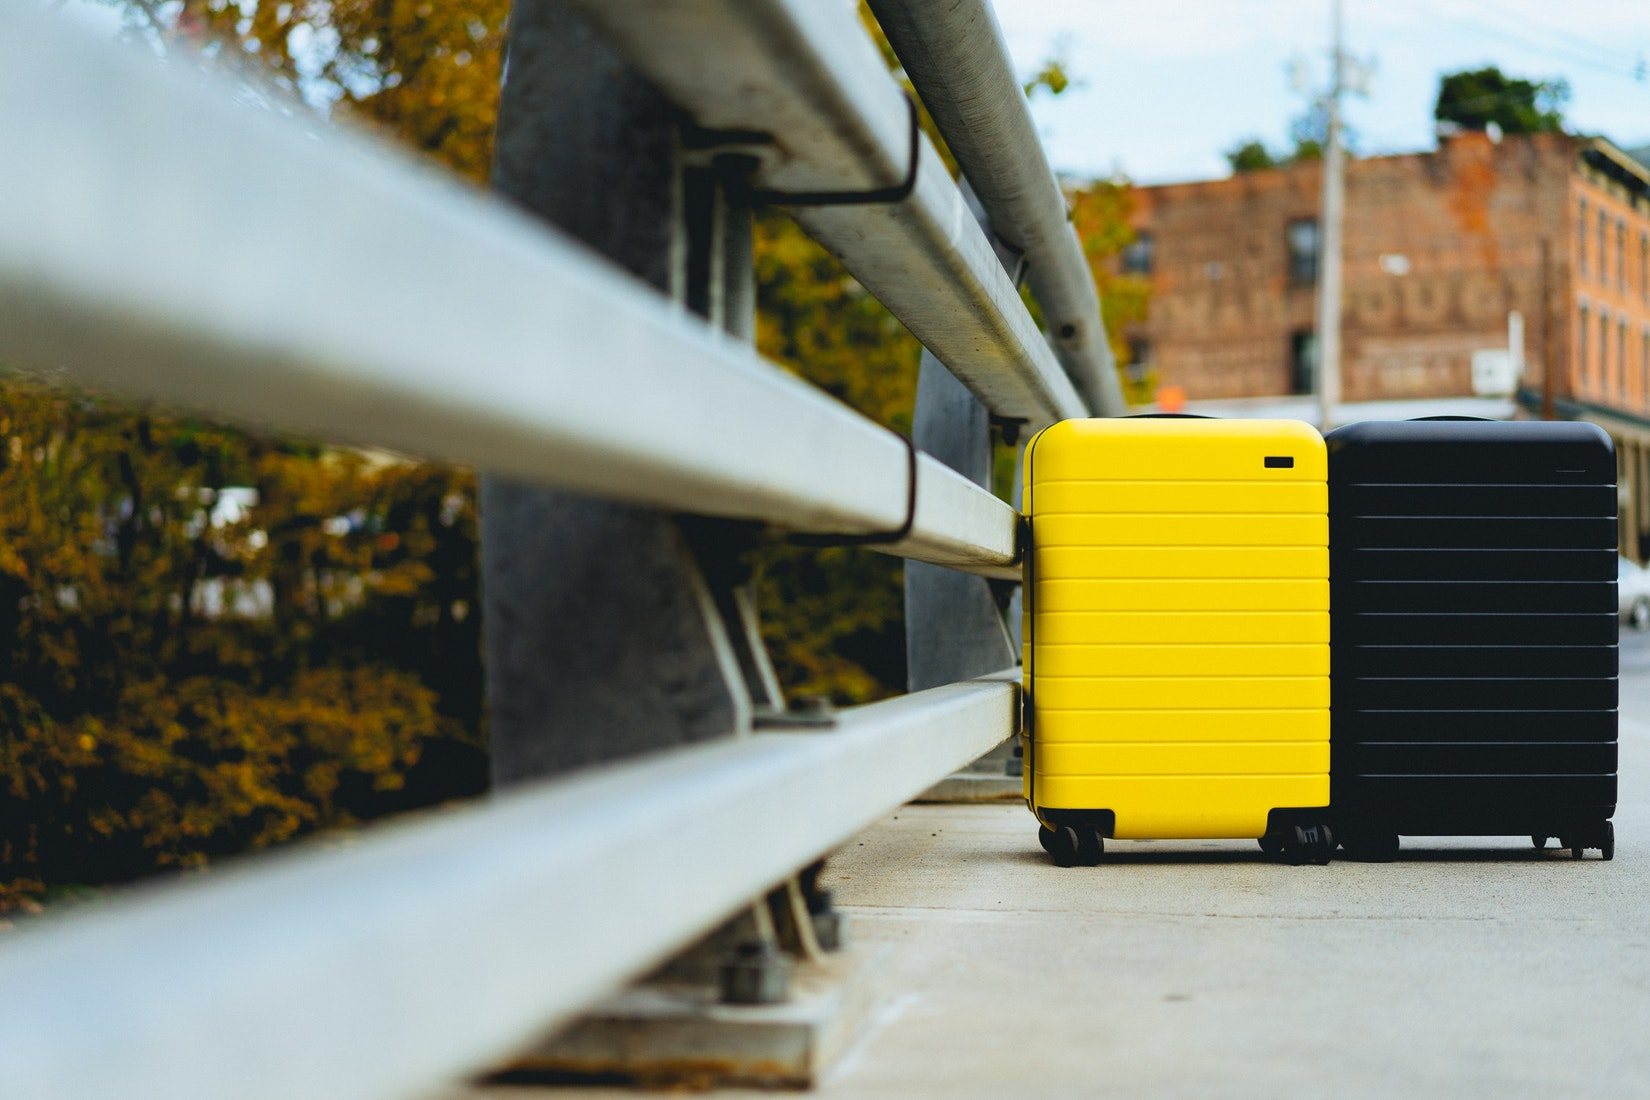 Yellow and black suitcase in an urban setting